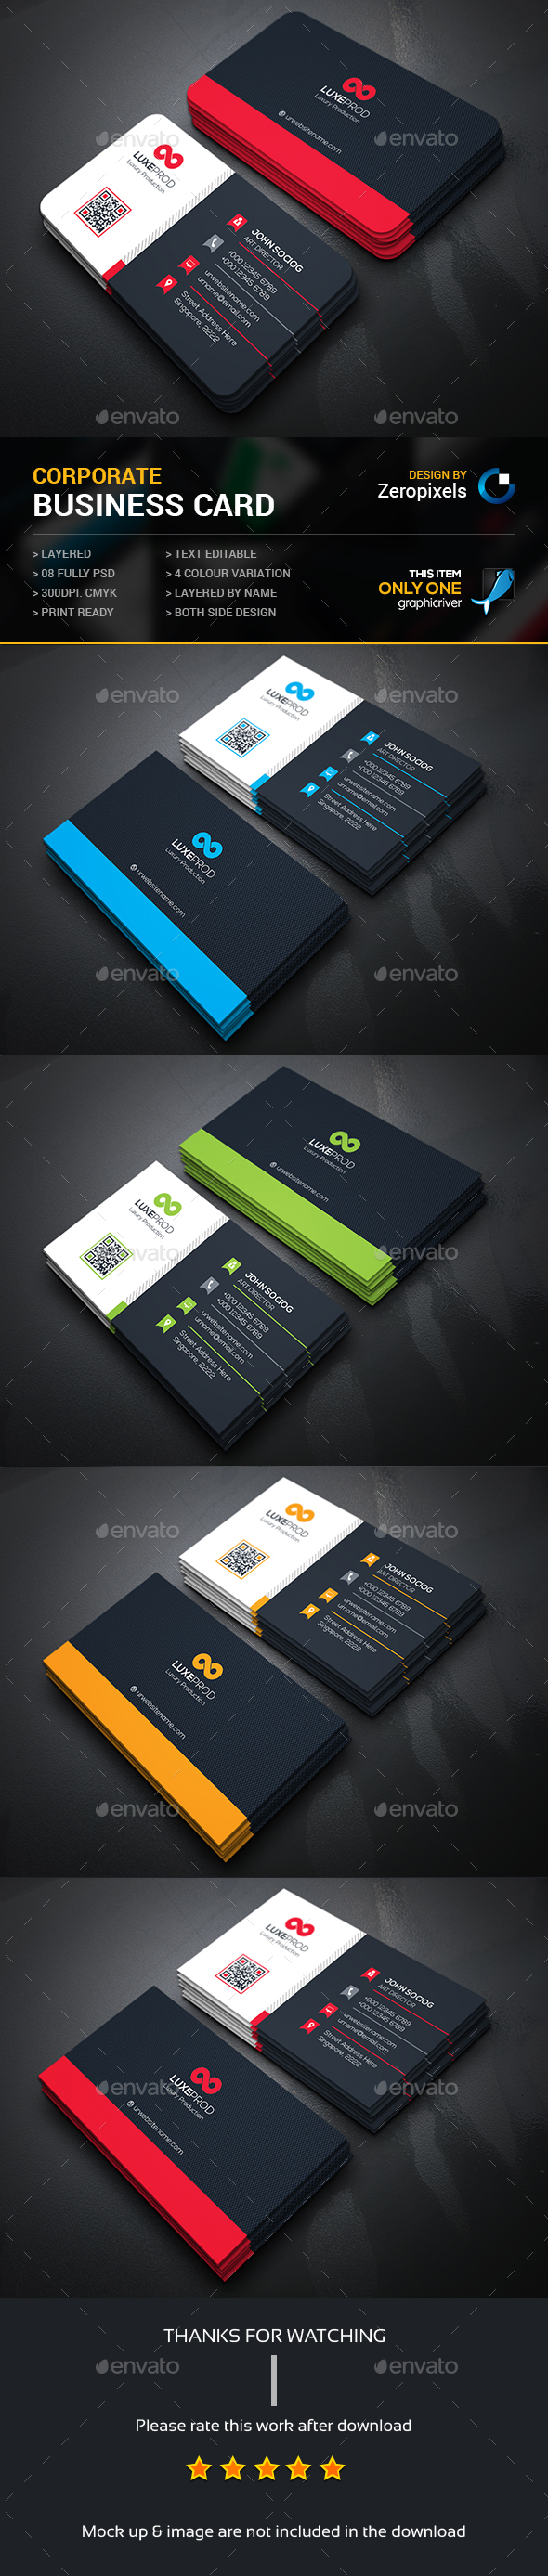 Corporate business card business cards print templates corporate business card business cards print templates reheart Images